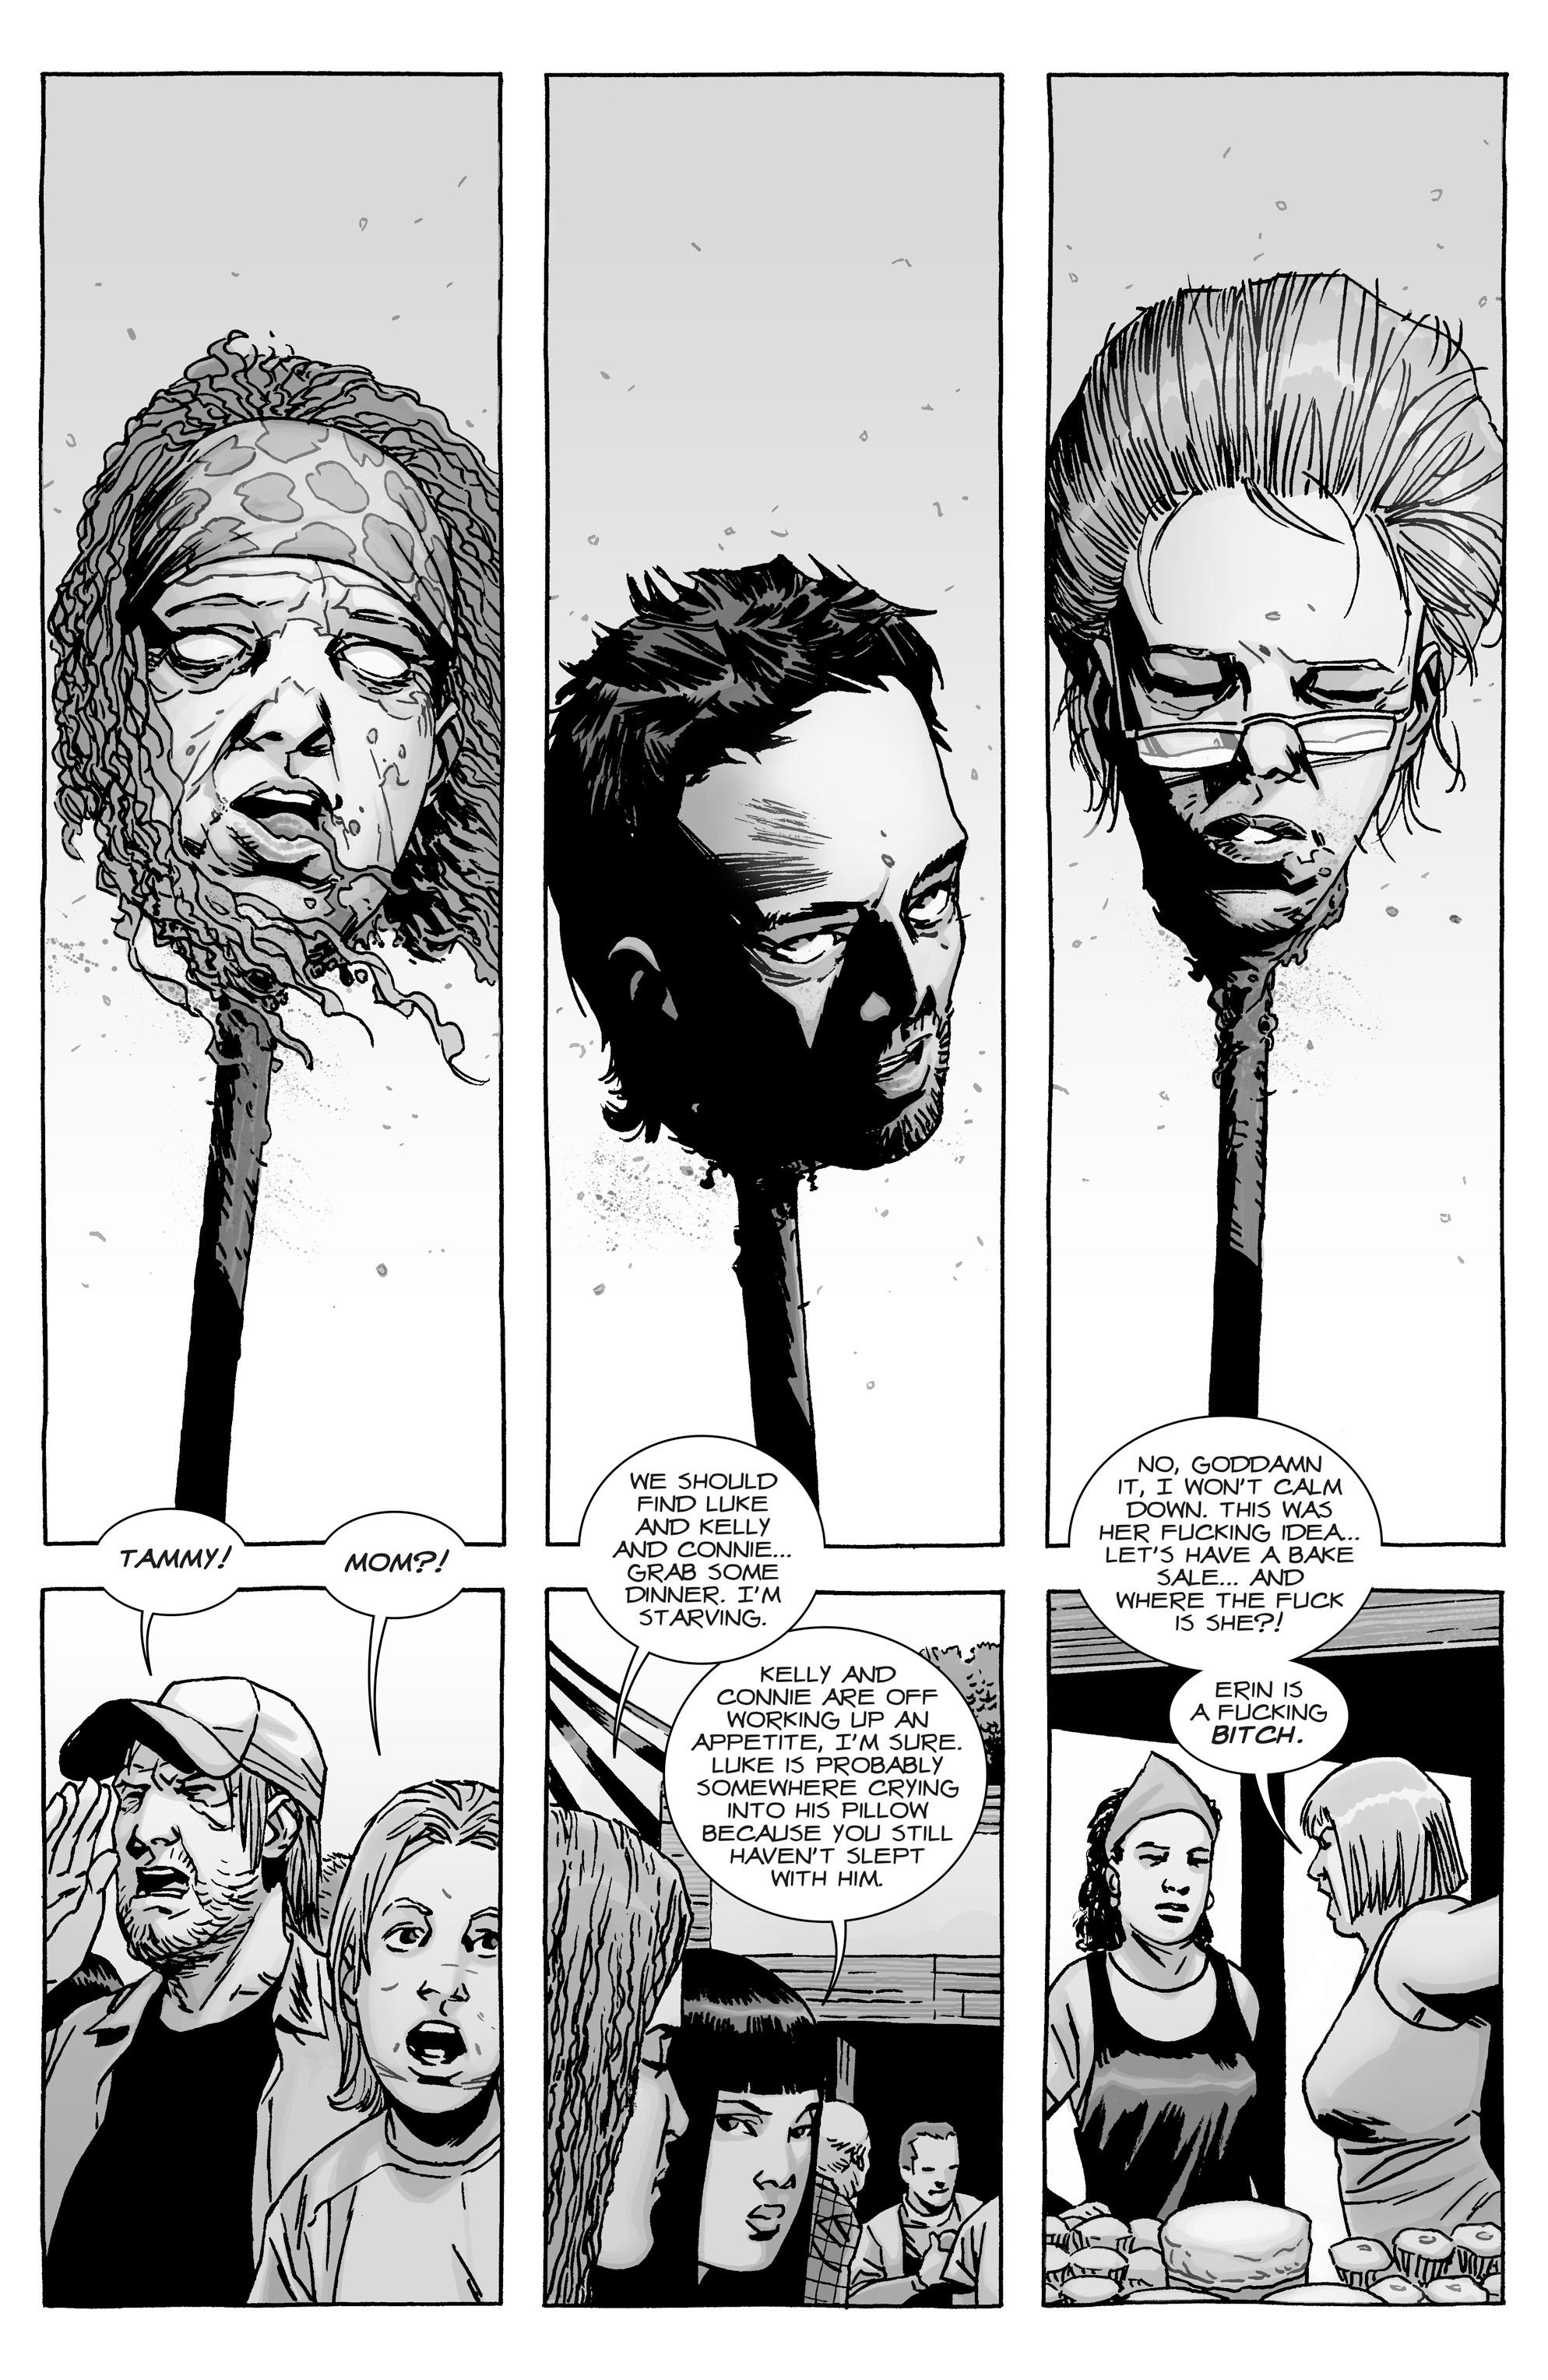 The Walking Dead Issue 144 Read Comic Online In High Quality